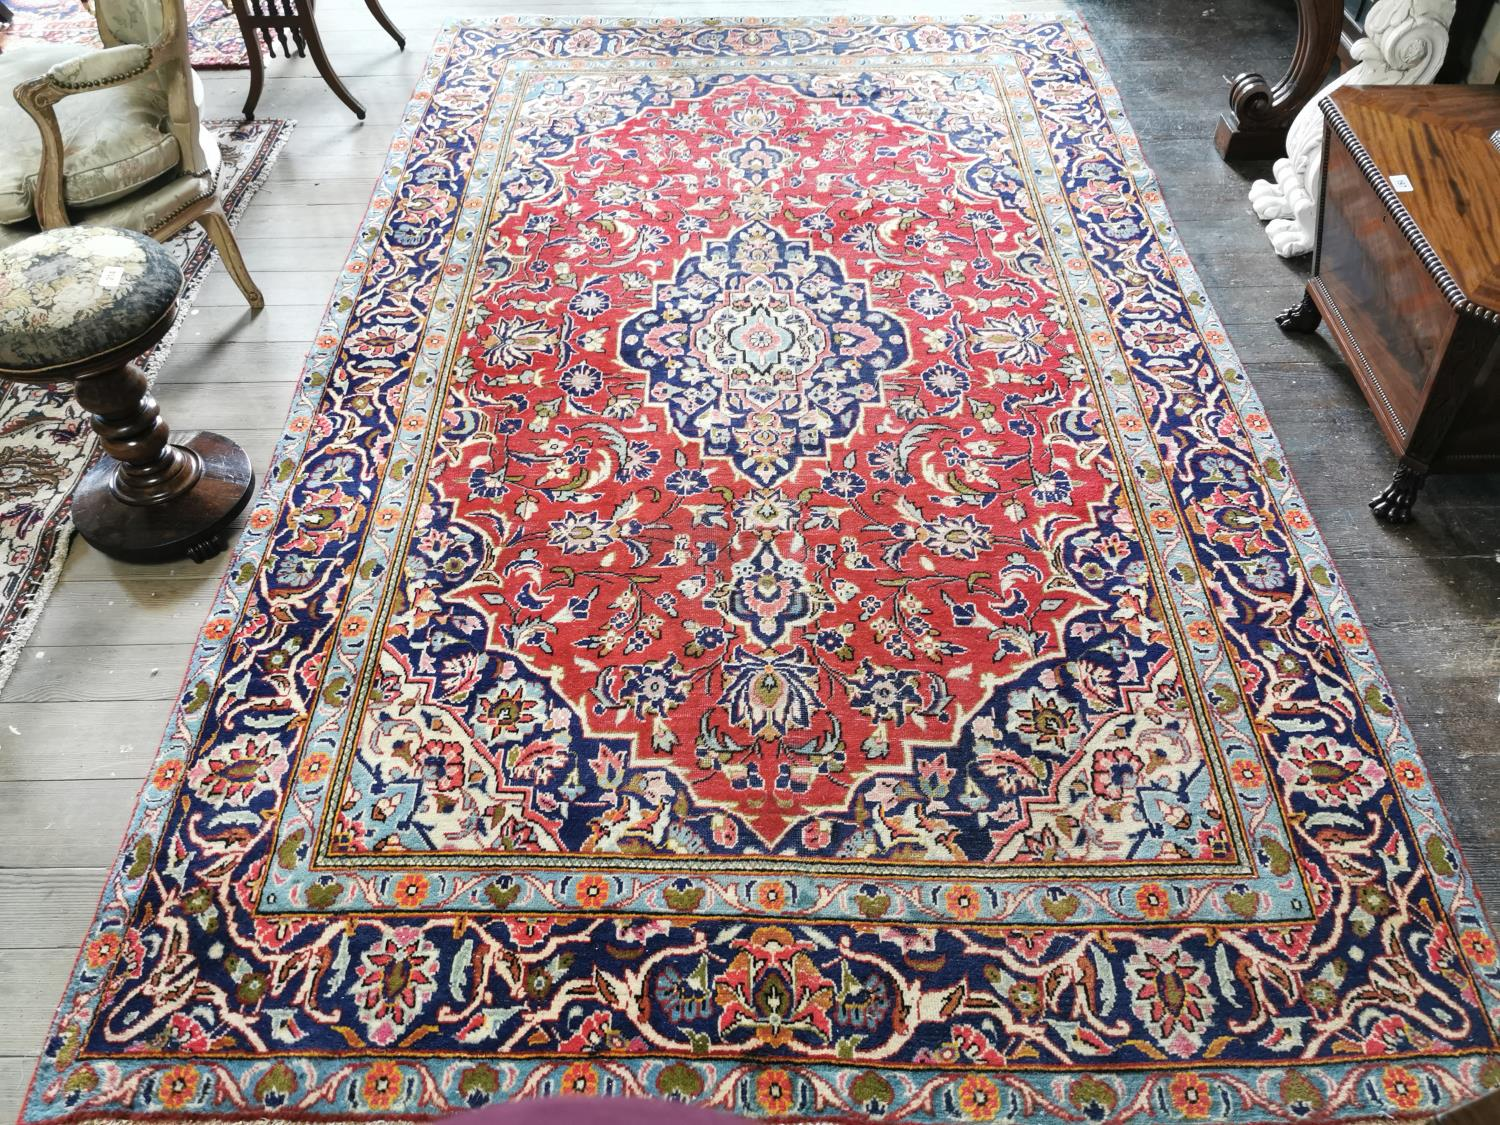 Iranian hand knotted wool carpet